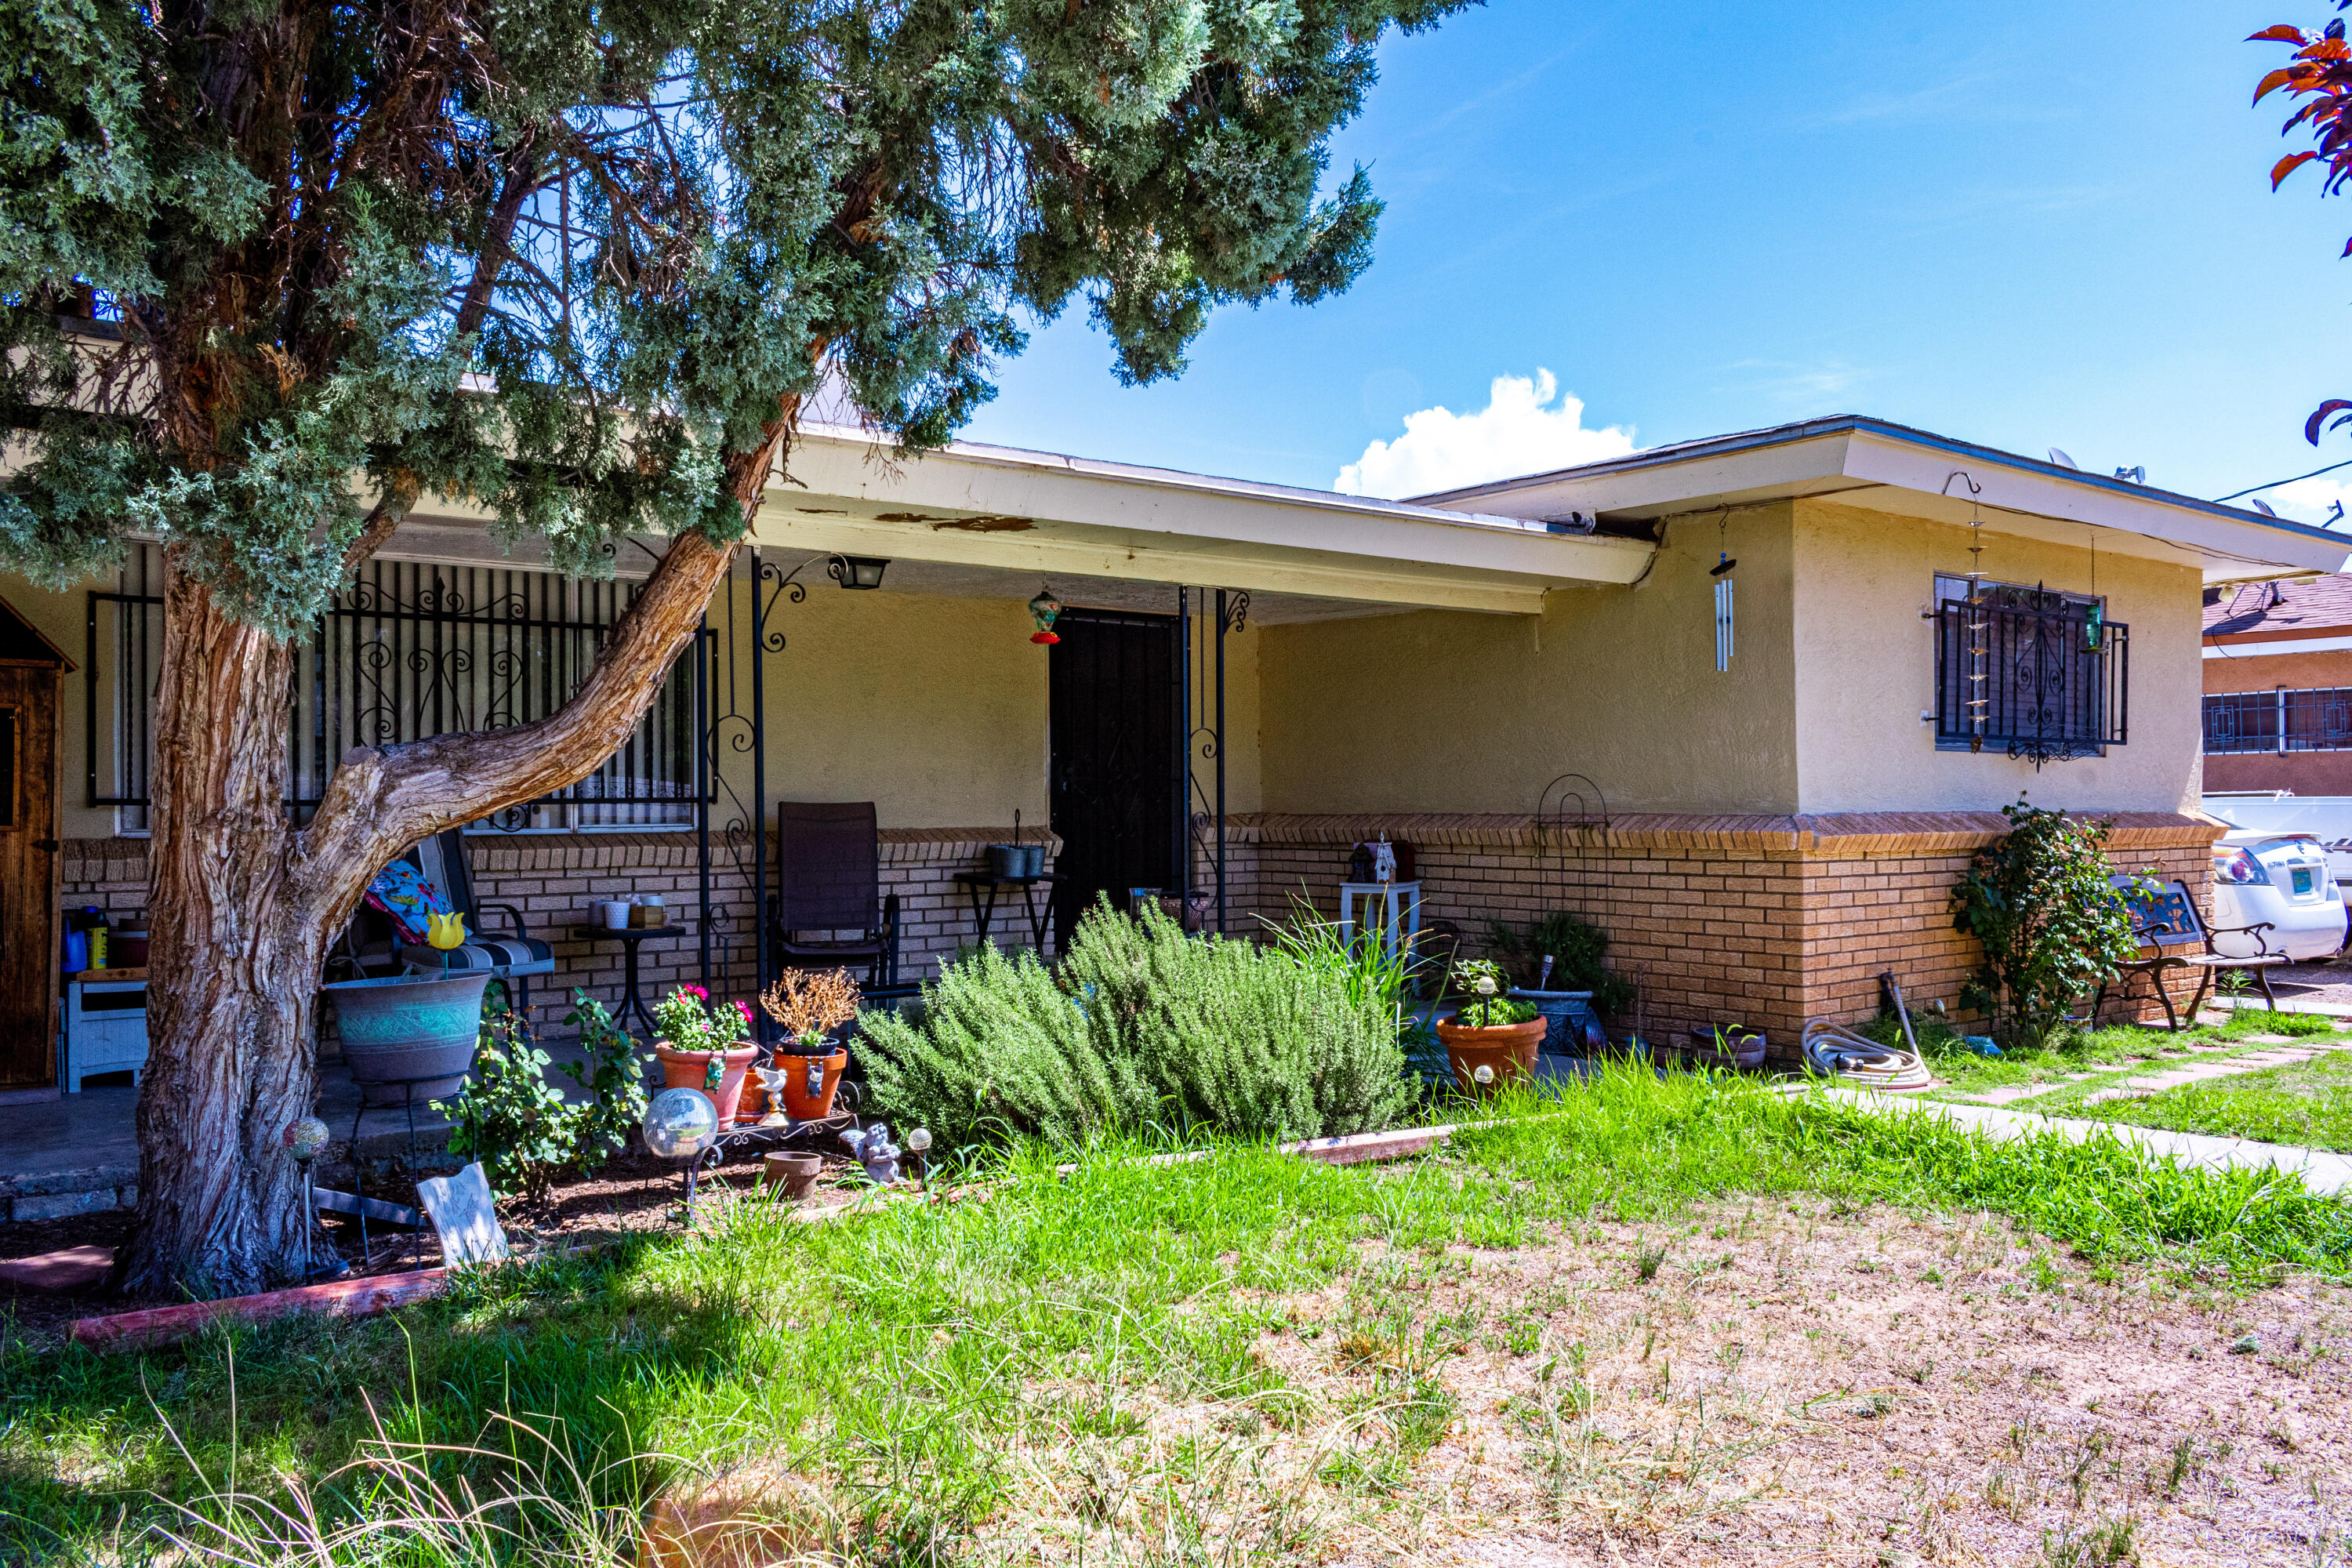 4 bedroom home with backyard access!  Carport, plenty of parking and storage in the back yard.  Primary bedroom is separated from the other bedrooms.